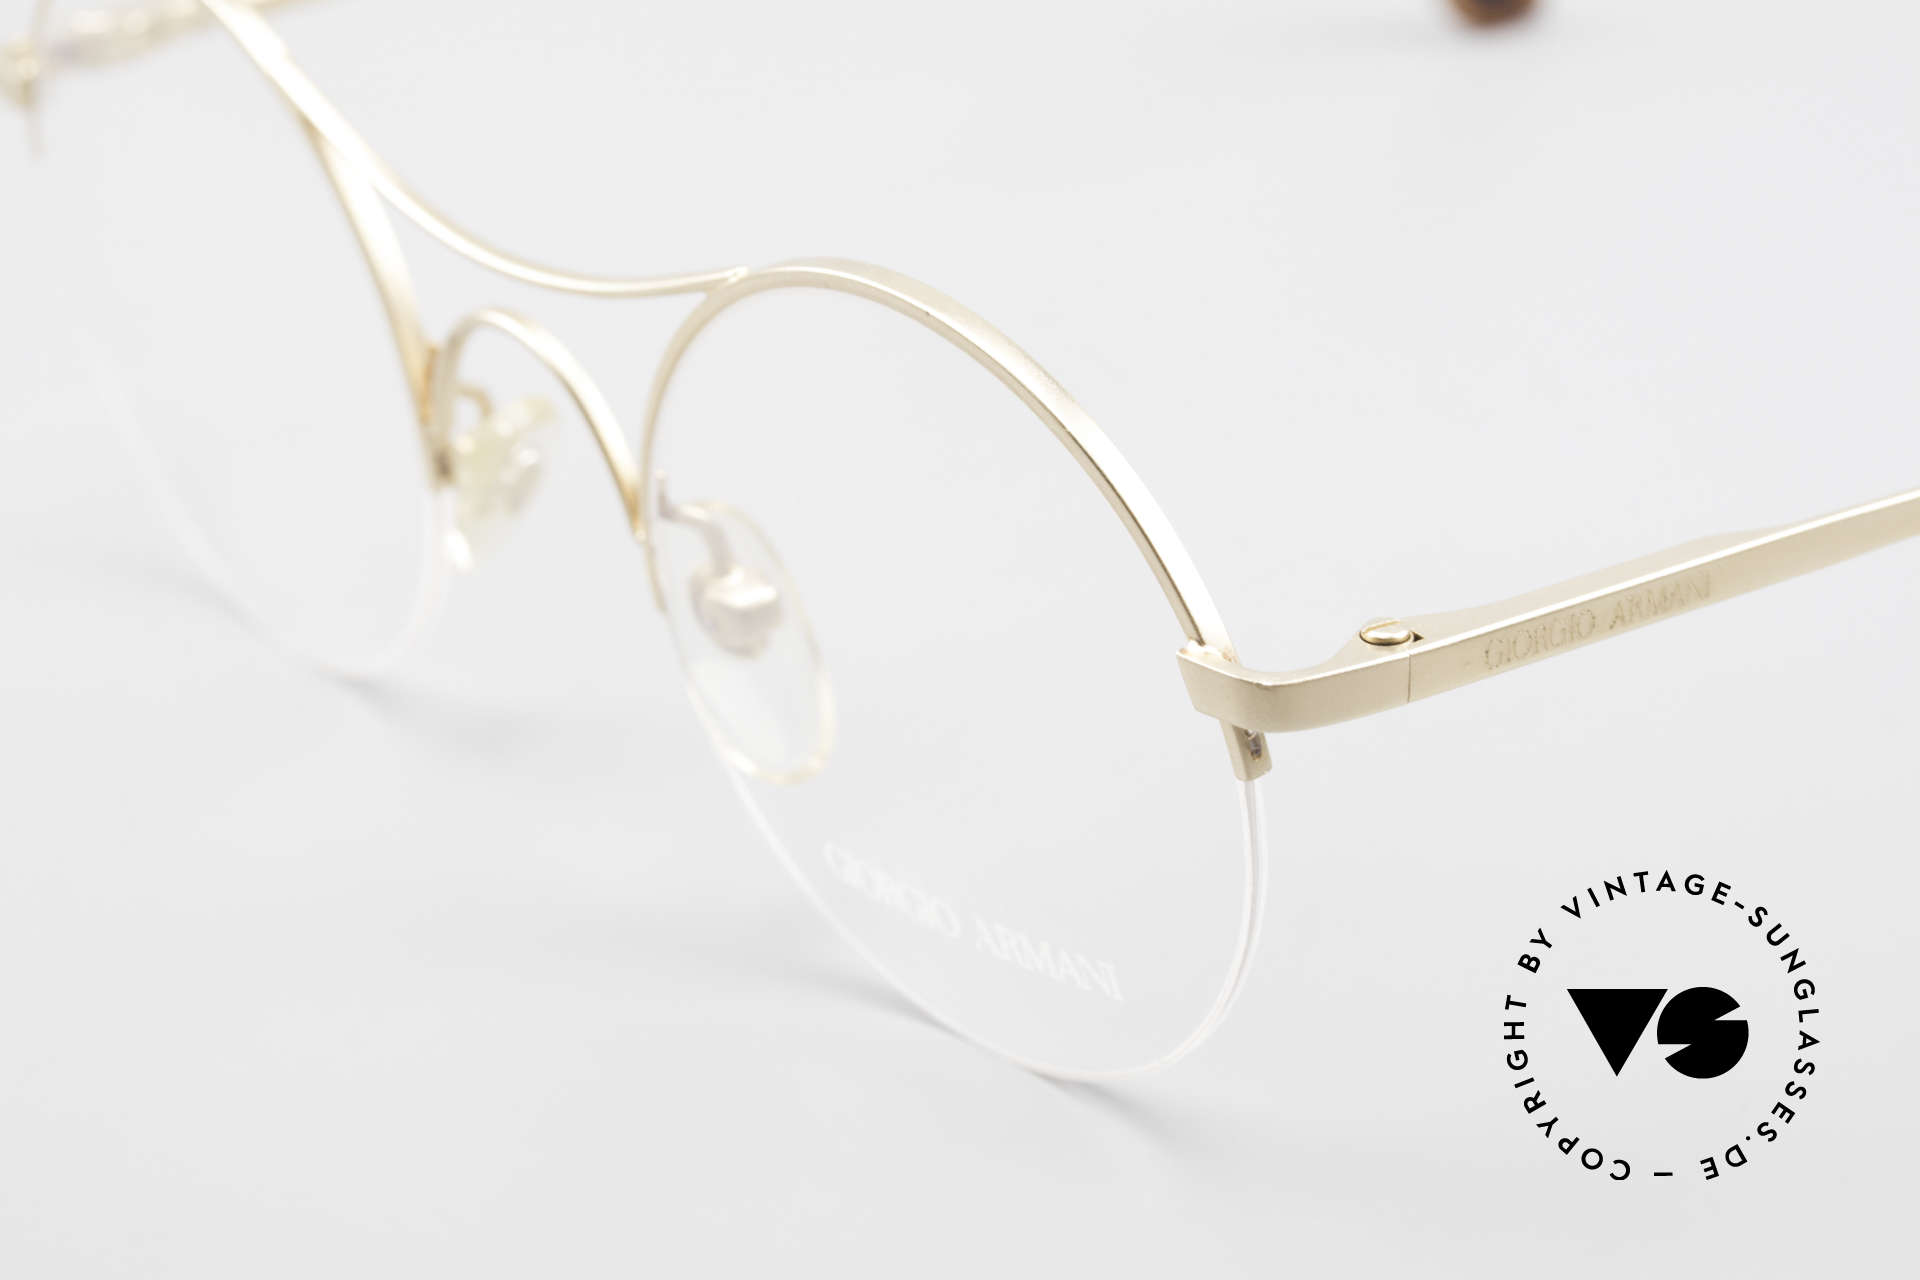 Giorgio Armani 121 Schubert Glasses Round Style, plain and puristic 'wire glasses' with a Nylor thread, Made for Men